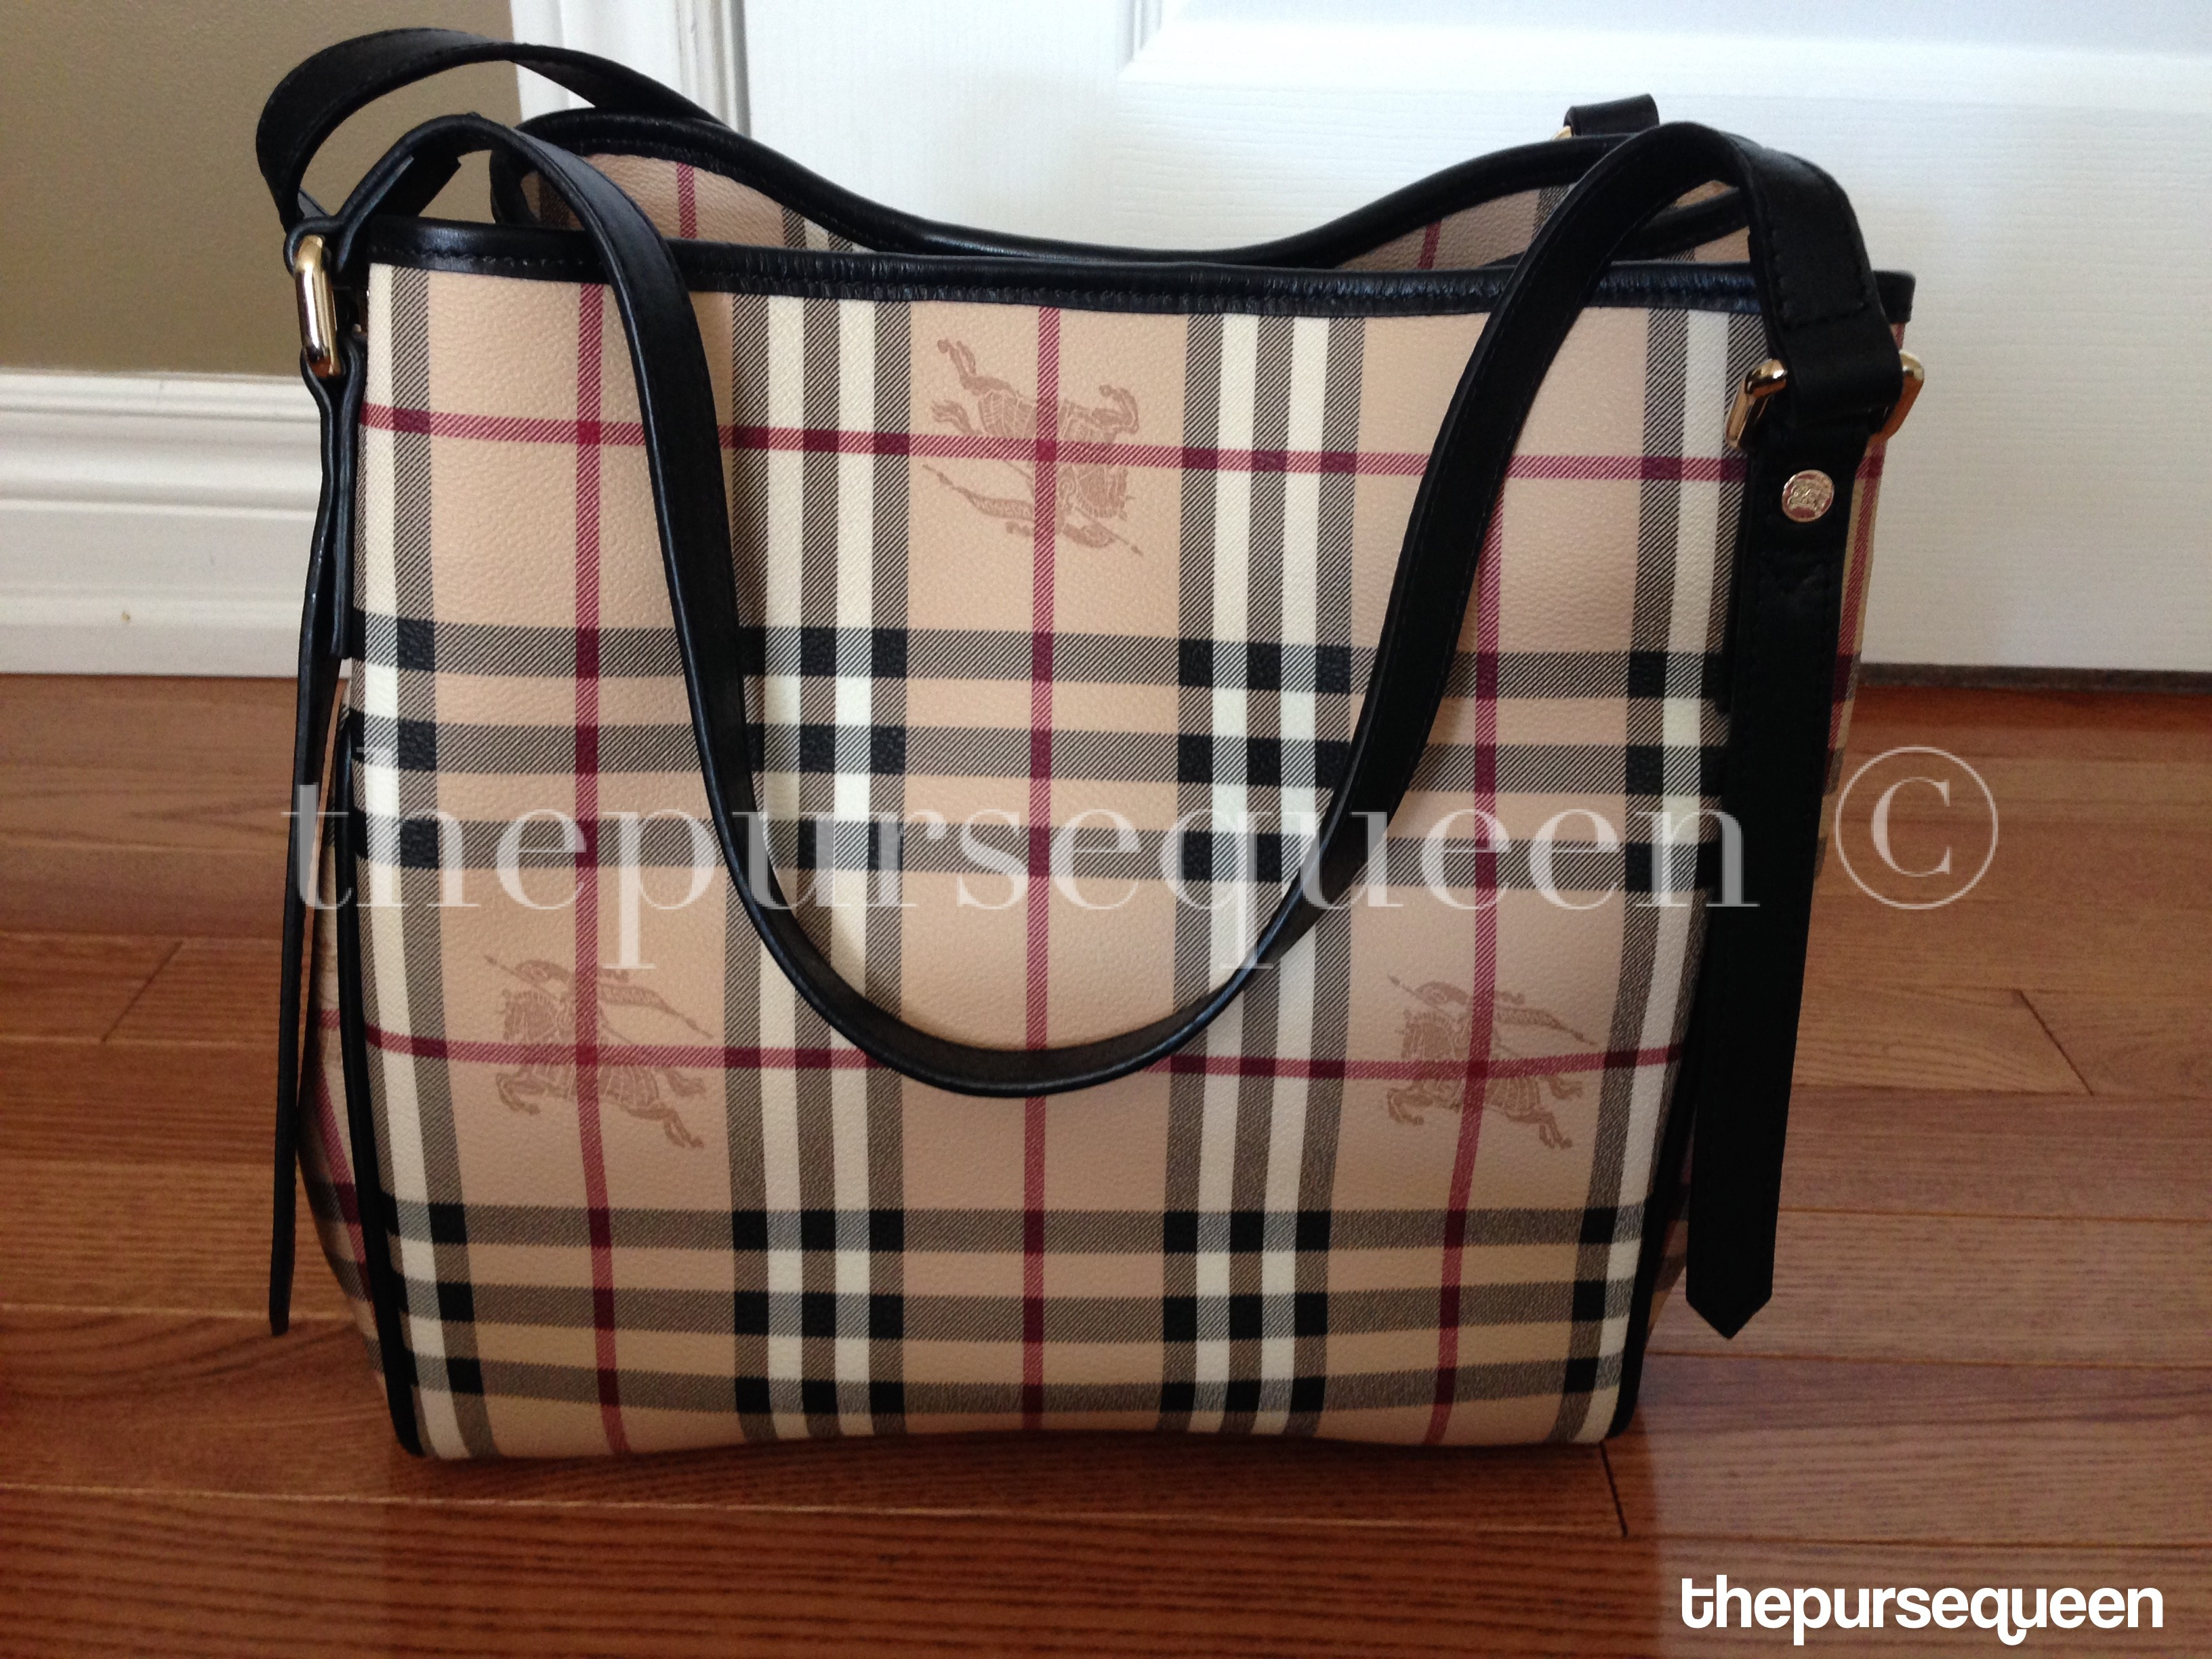 b9a468ce0caa ... burberry tote haymarket replica authentic fake real closeup ...